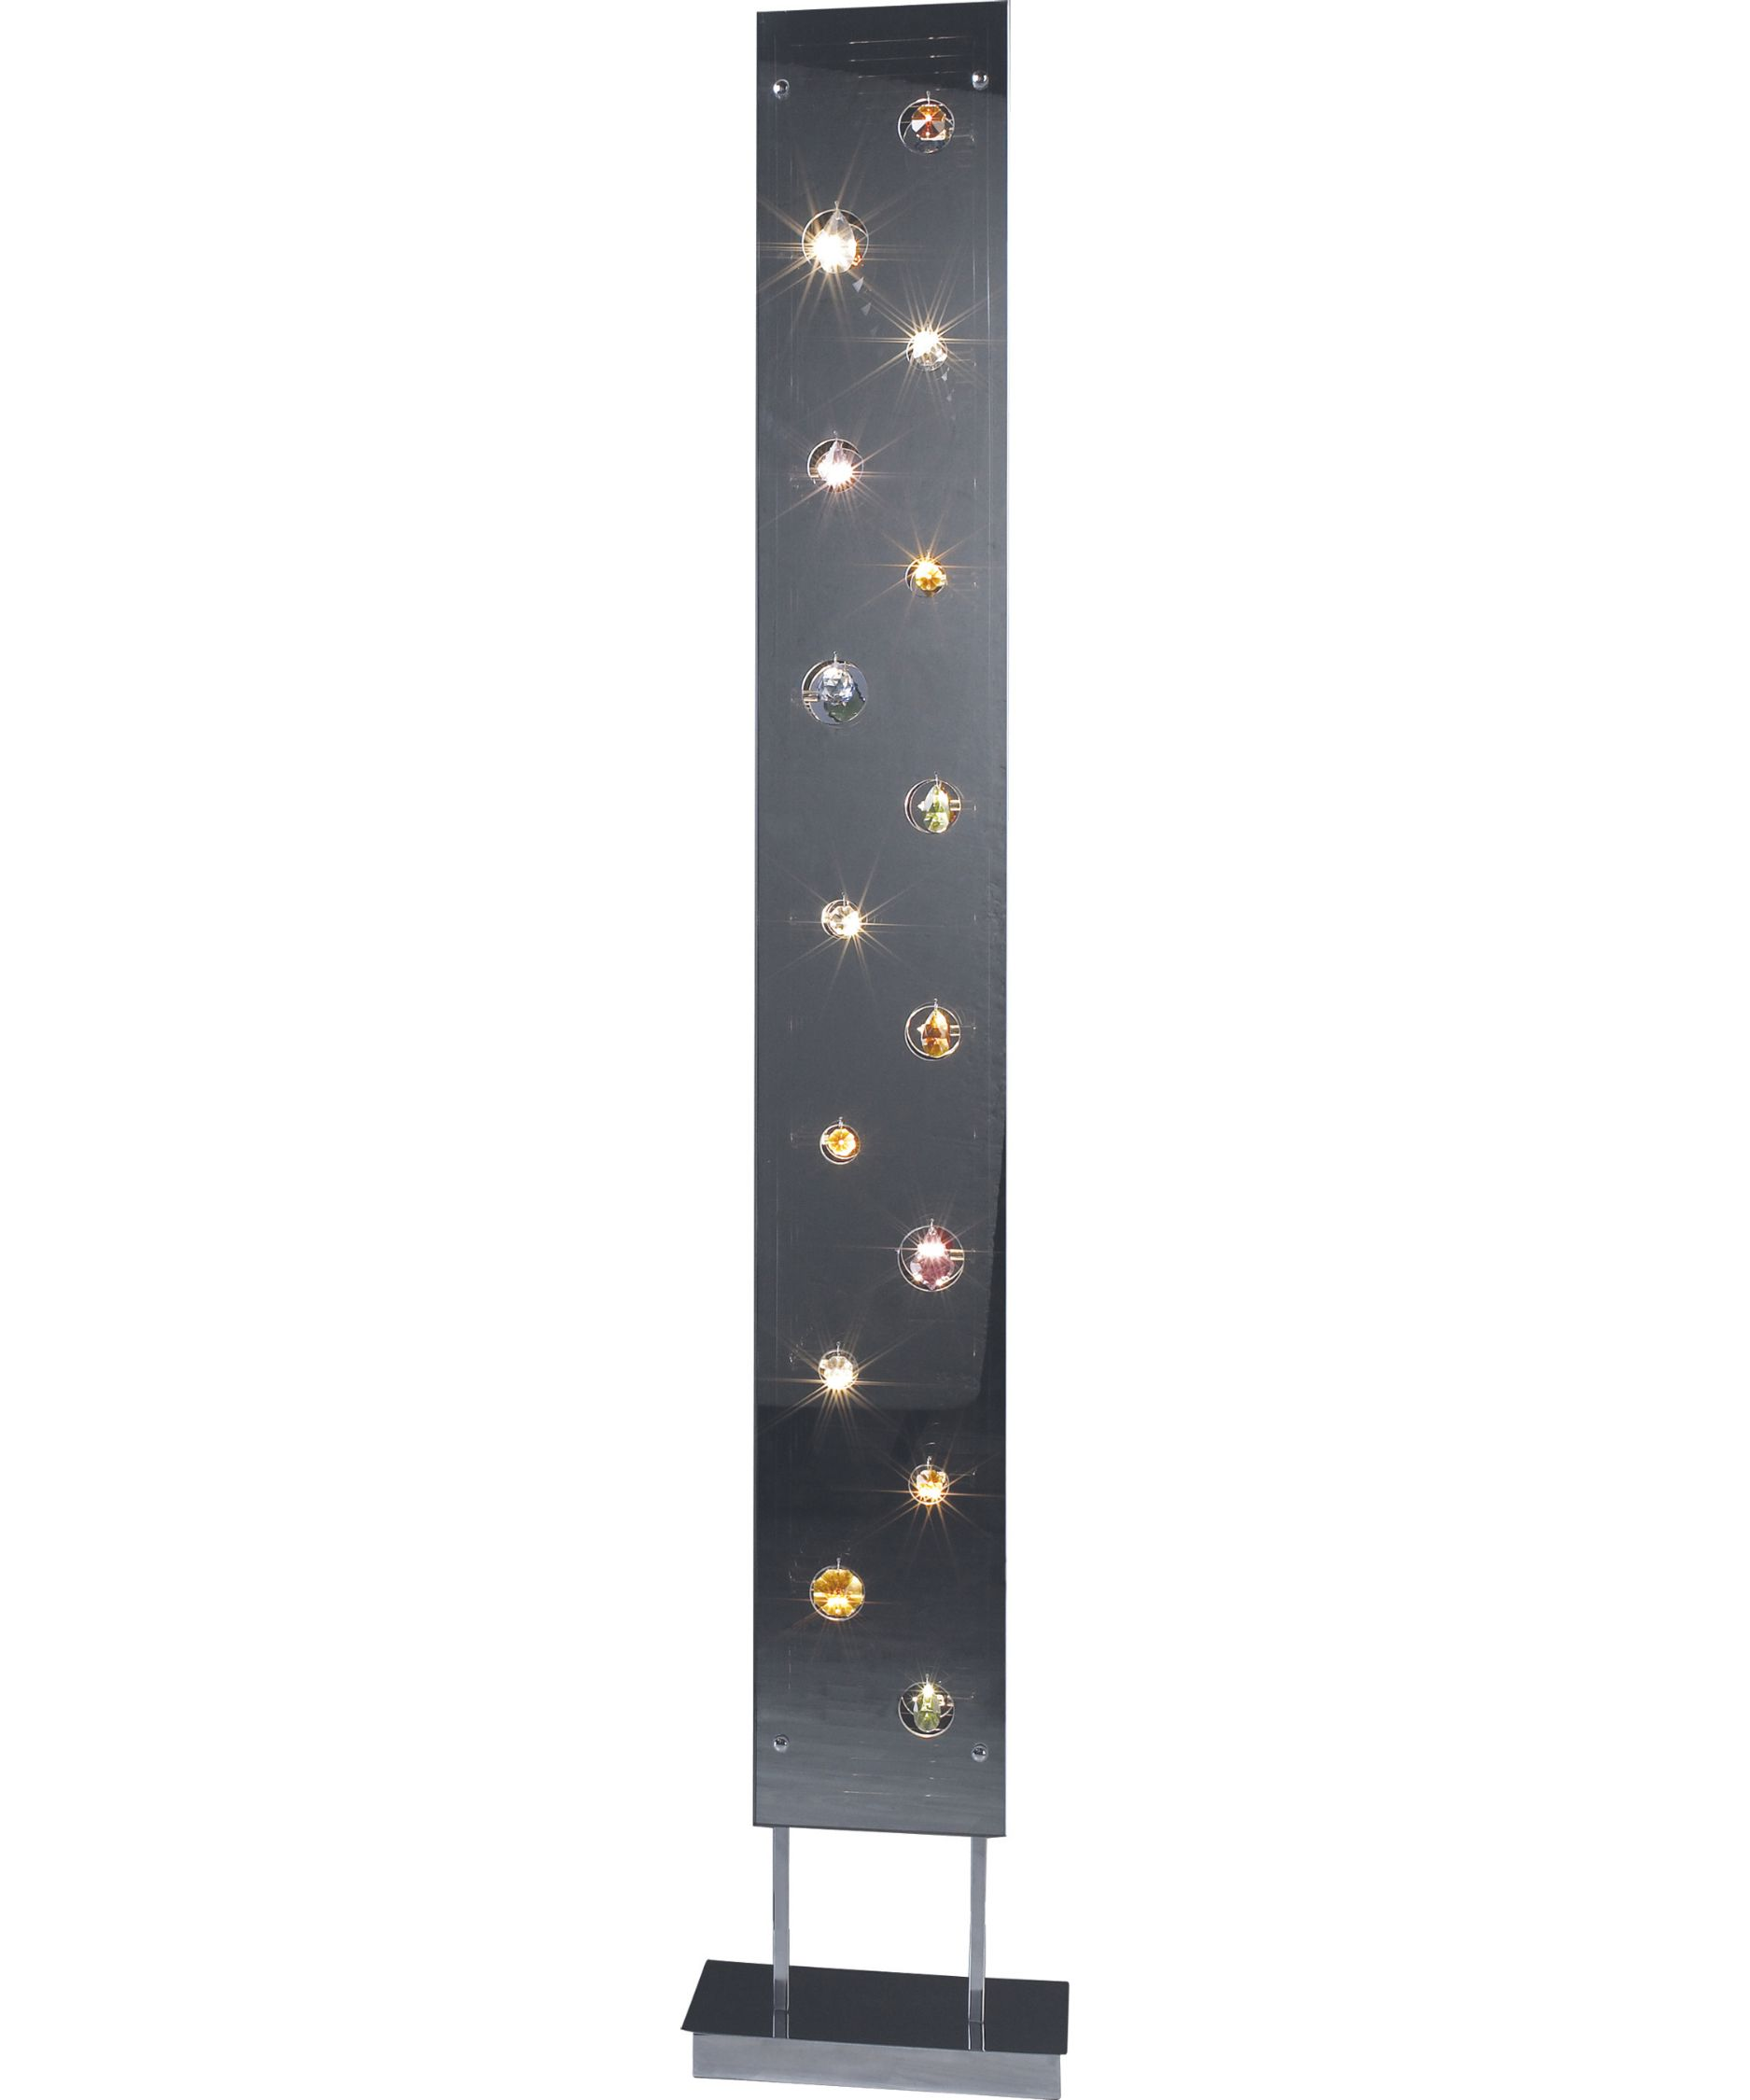 Infinity Lamp By Et2 Lighting Click The Image To Learn